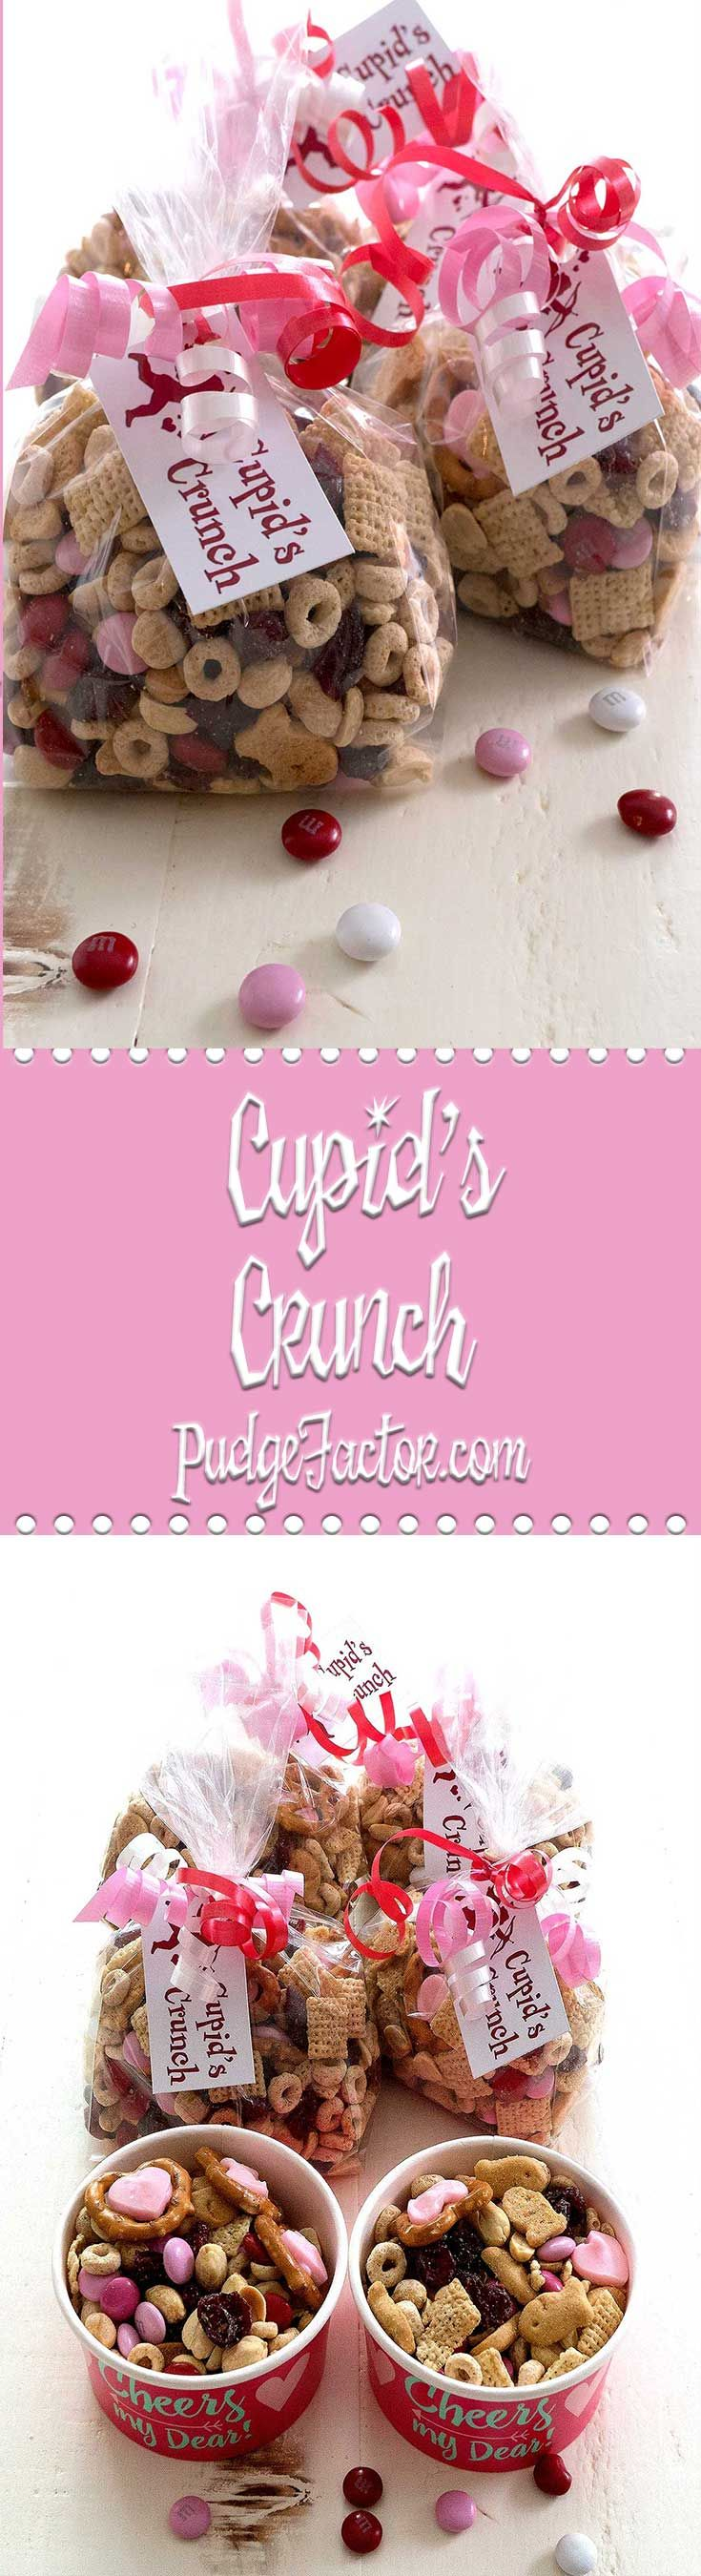 Surprise your sweetheart with Cupid's Crunch. It's a no-bake treat that combines sweet & salty to produce a perfect gift for Valentine's. via @c2king